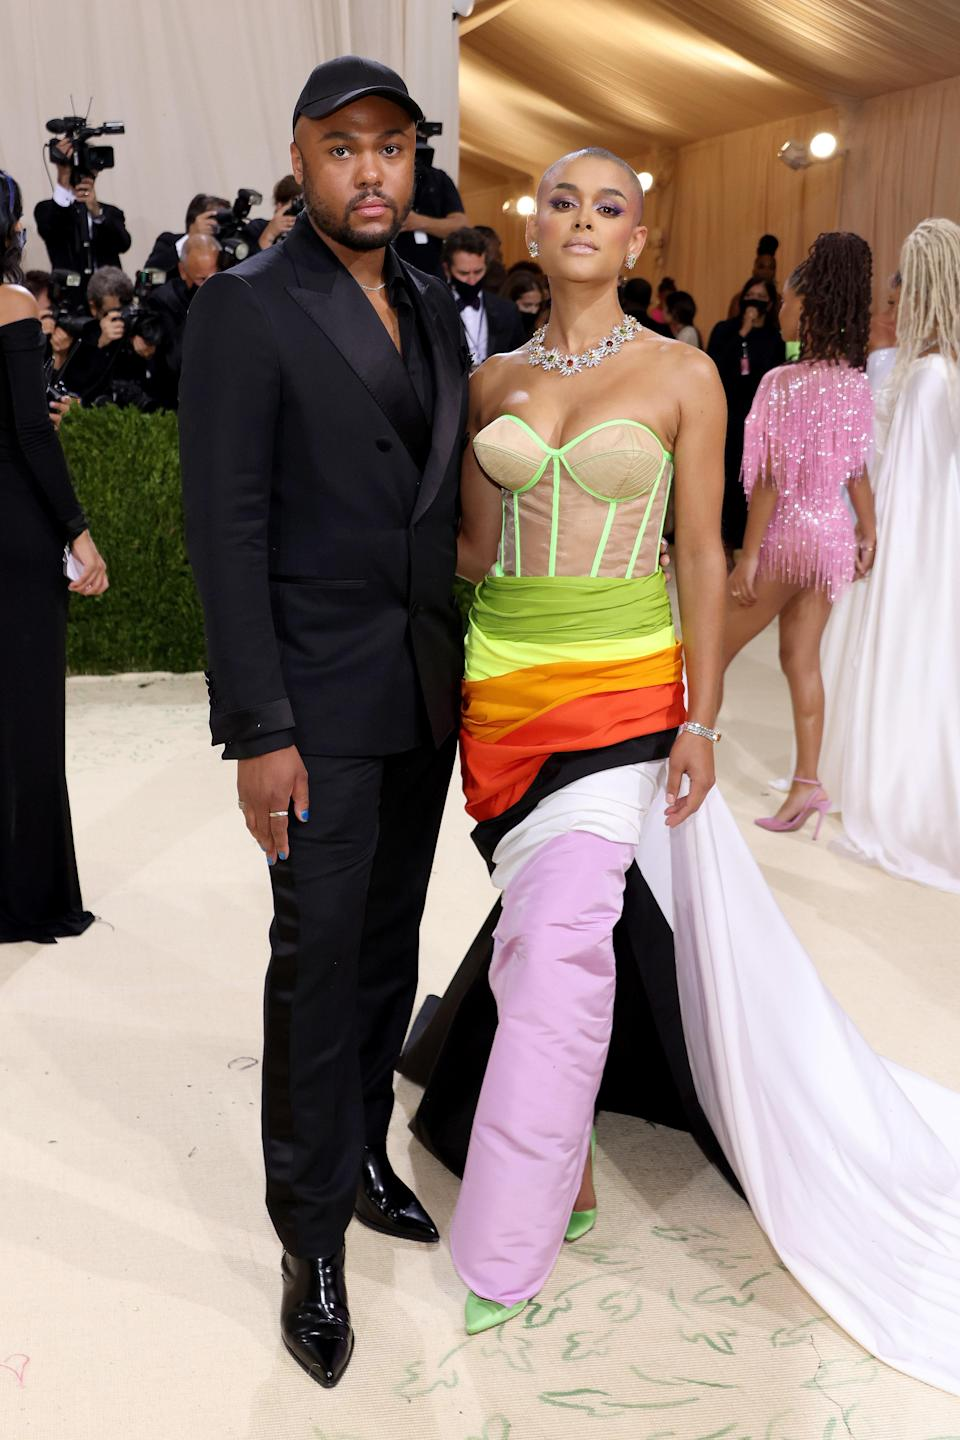 New <em>Gossip Girl</em> star Jordan Alexander looked breathtaking in an LGBTQ+-inspired flag dress by Louisana-born and Brooklyn-based designer Christopher John Rogers, with whom she walked up the iconic Met stairs she knows so well.